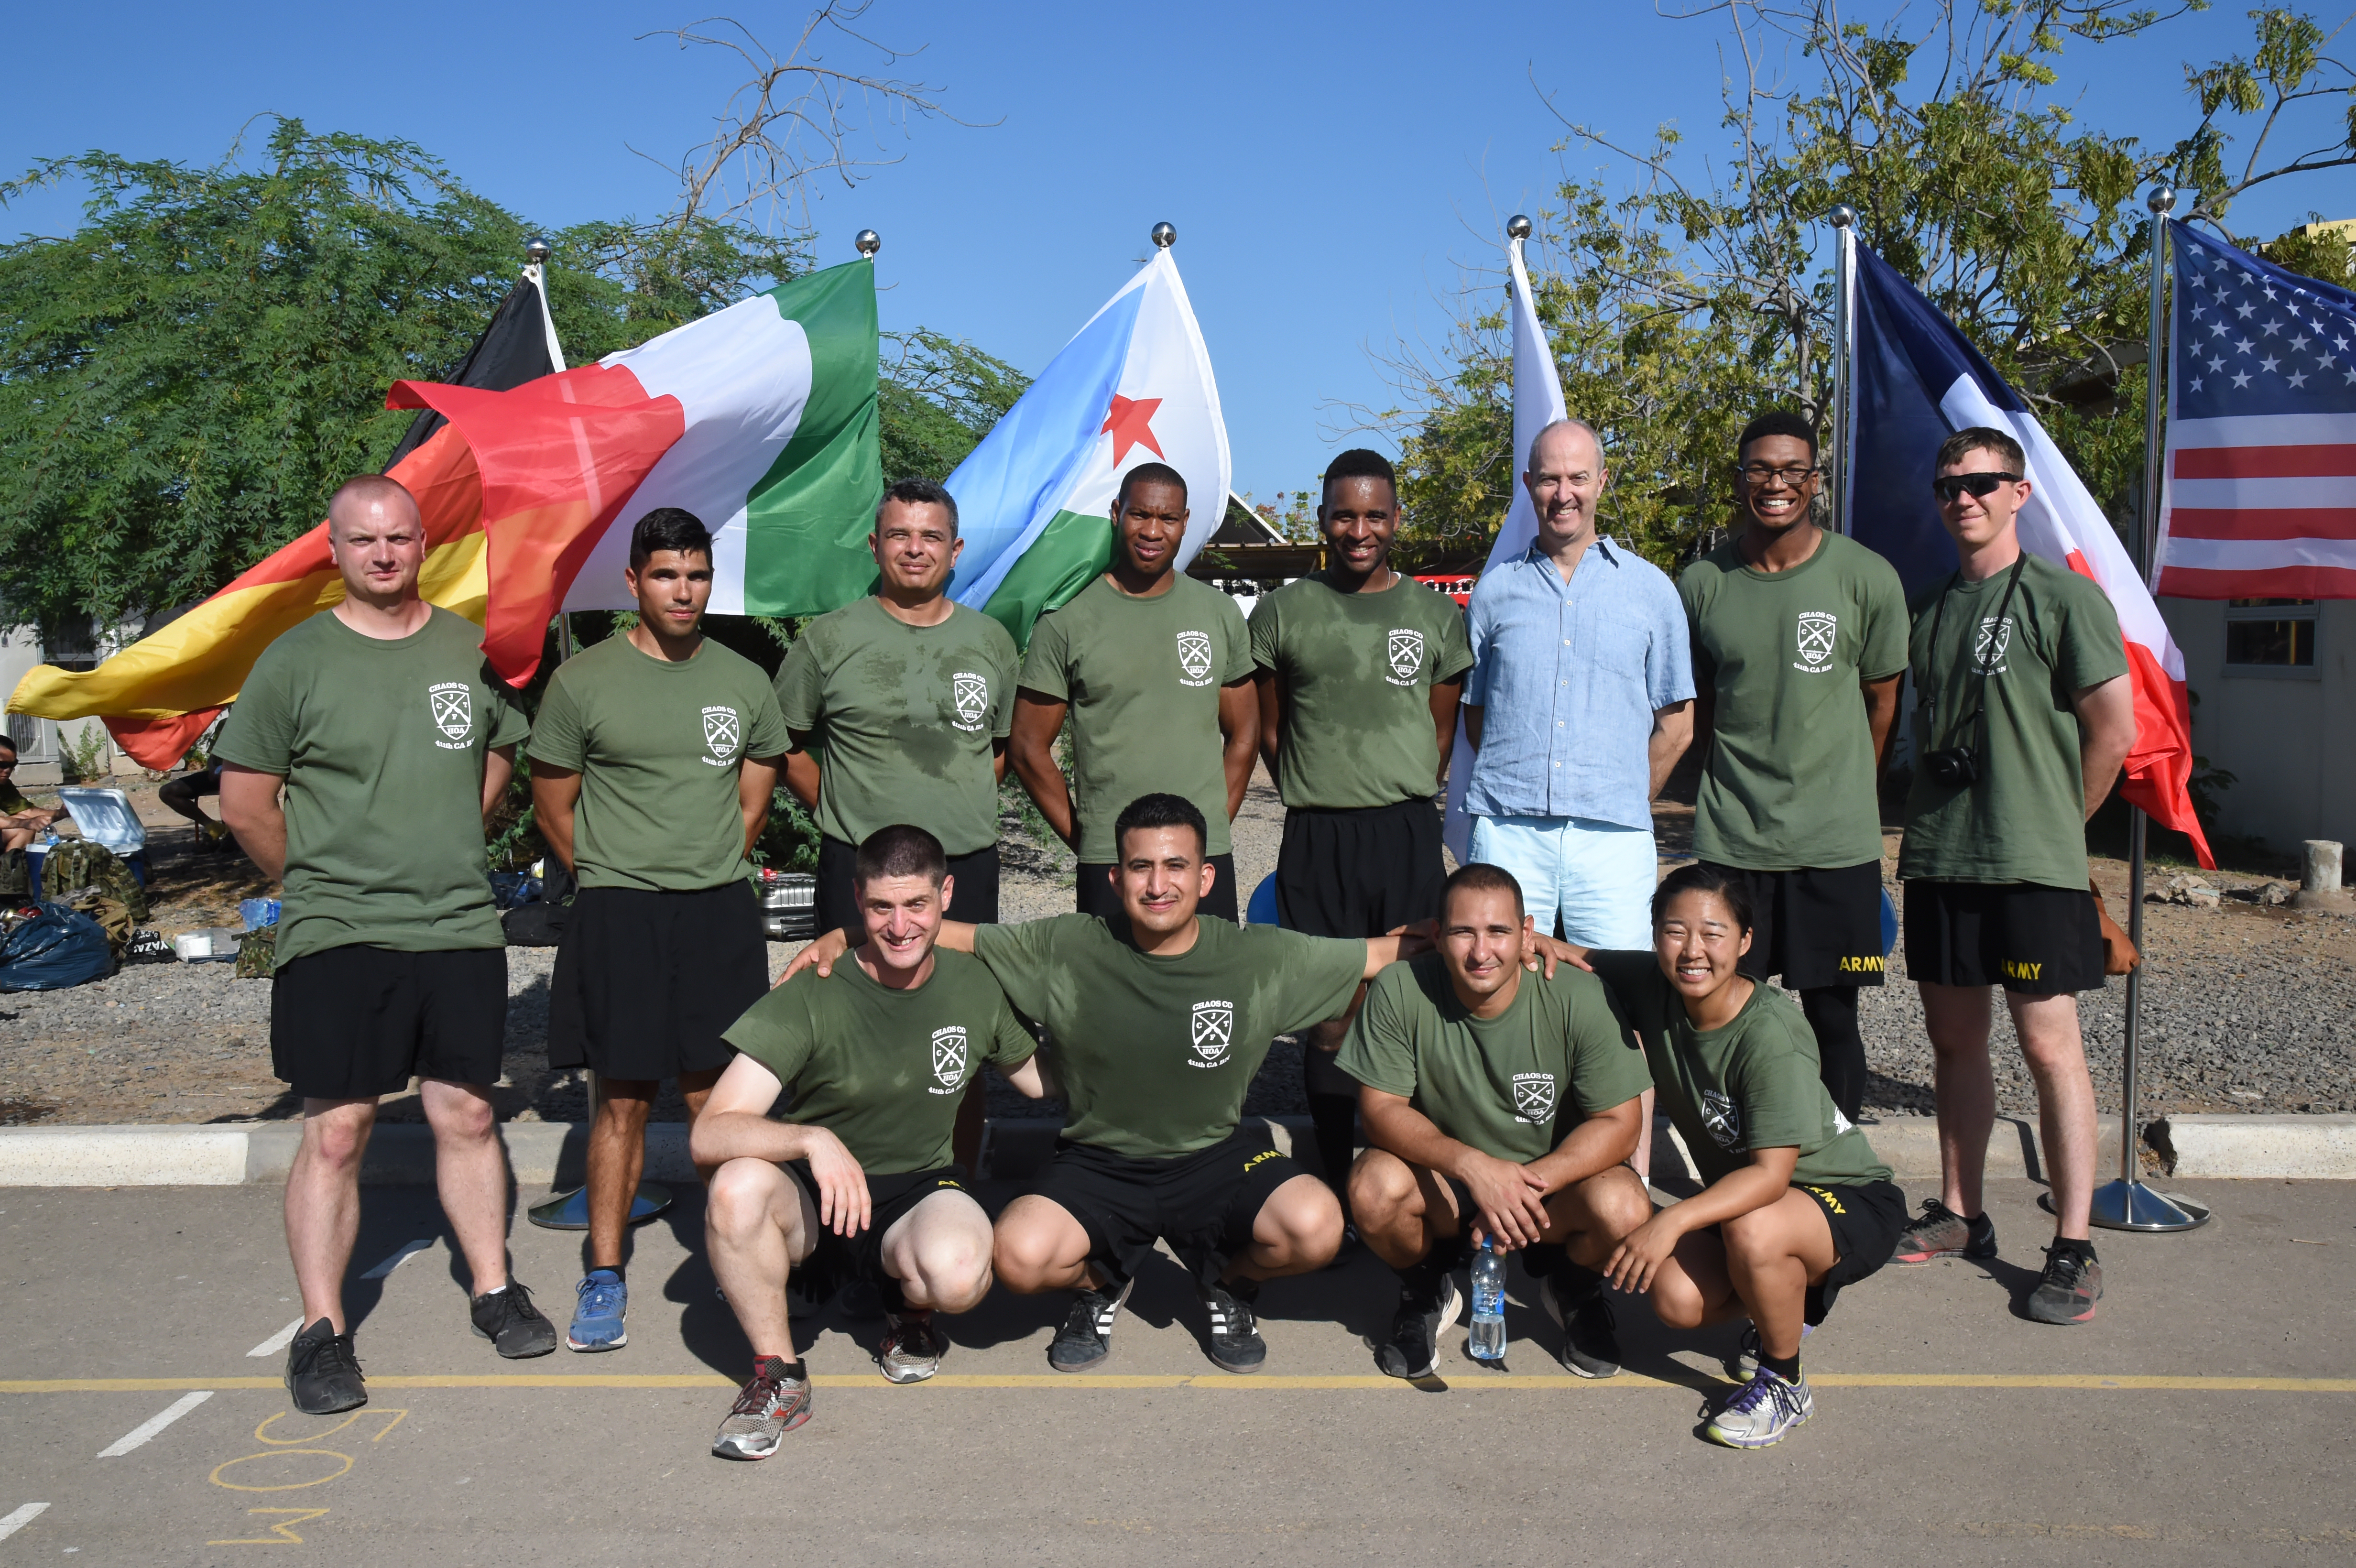 A soccer team comprised of U.S. Army Reserve Soldiers from Charlie Company of the 411th Civil Affairs Battalion pause for a photo with U.S. Ambassador to Djibouti Tom Kelly during a tournament at the French school Kessel in downtown Djibouti Dec. 9, 2016. The event brought together eleven different teams from six countries for friendly competition in support of the Kick for Nick Foundation. (U.S. Air National Guard photo by Master Sgt. Paul Gorman)